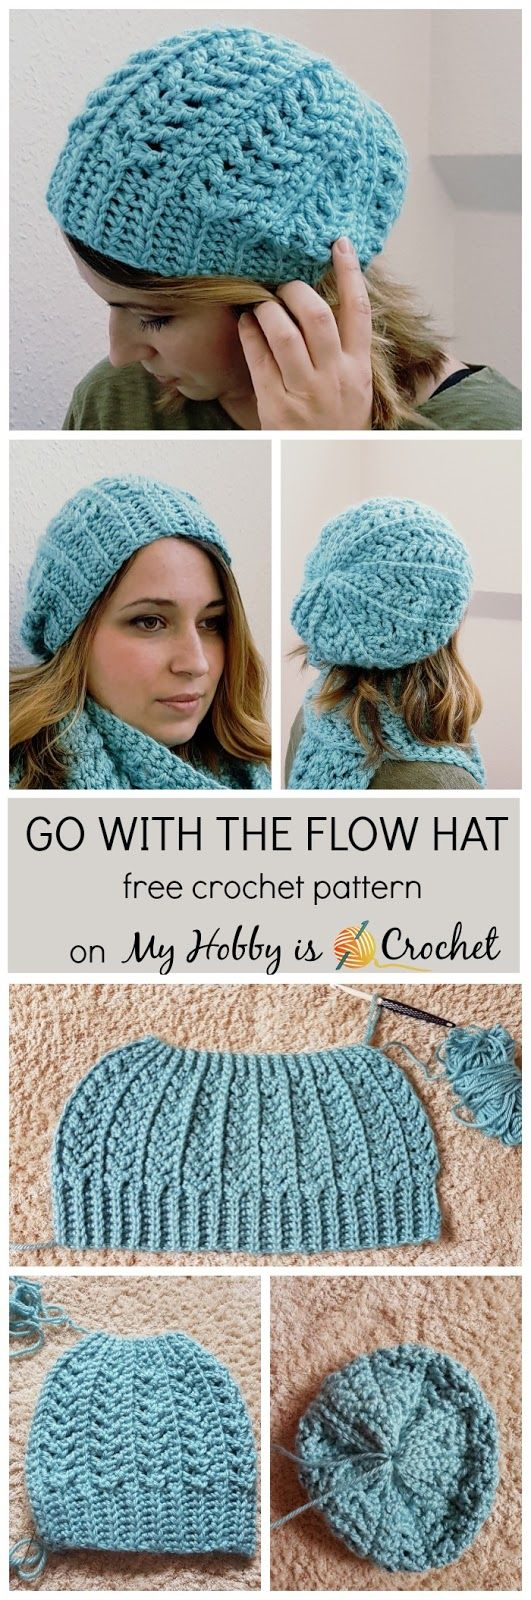 Best 25 crochet beanie hat ideas on pinterest crochet hats go with the flow hat free crochet pattern on myhobbyiscrochet bankloansurffo Choice Image